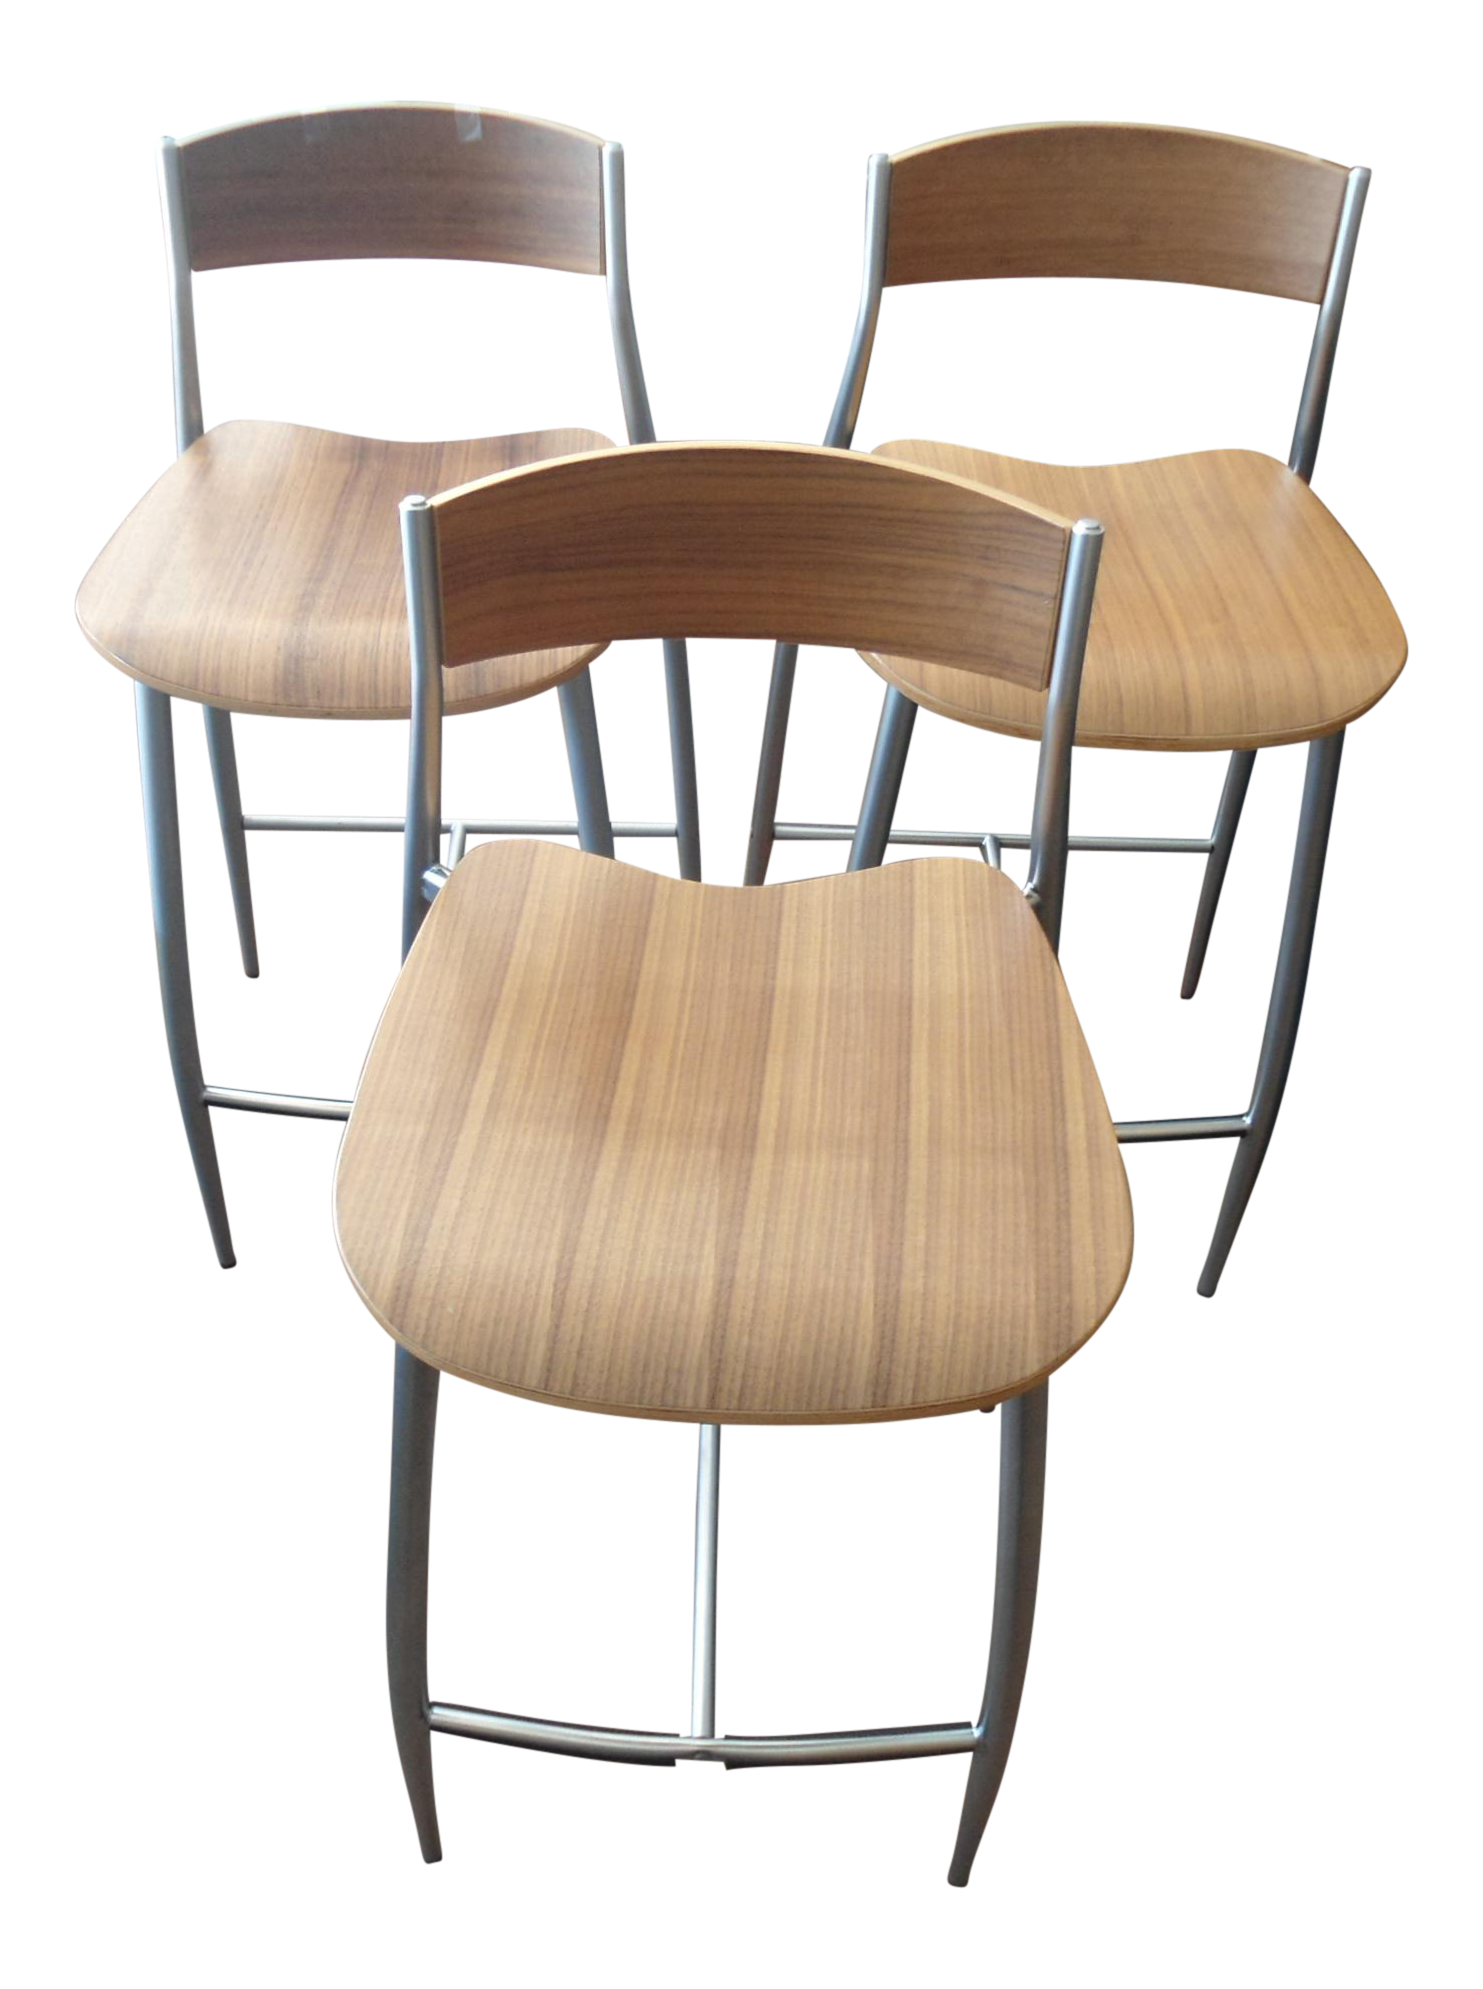 Stupendous Design Within Reach Baba Counter Stools Wood W Metal Frame Set Of 3 Creativecarmelina Interior Chair Design Creativecarmelinacom